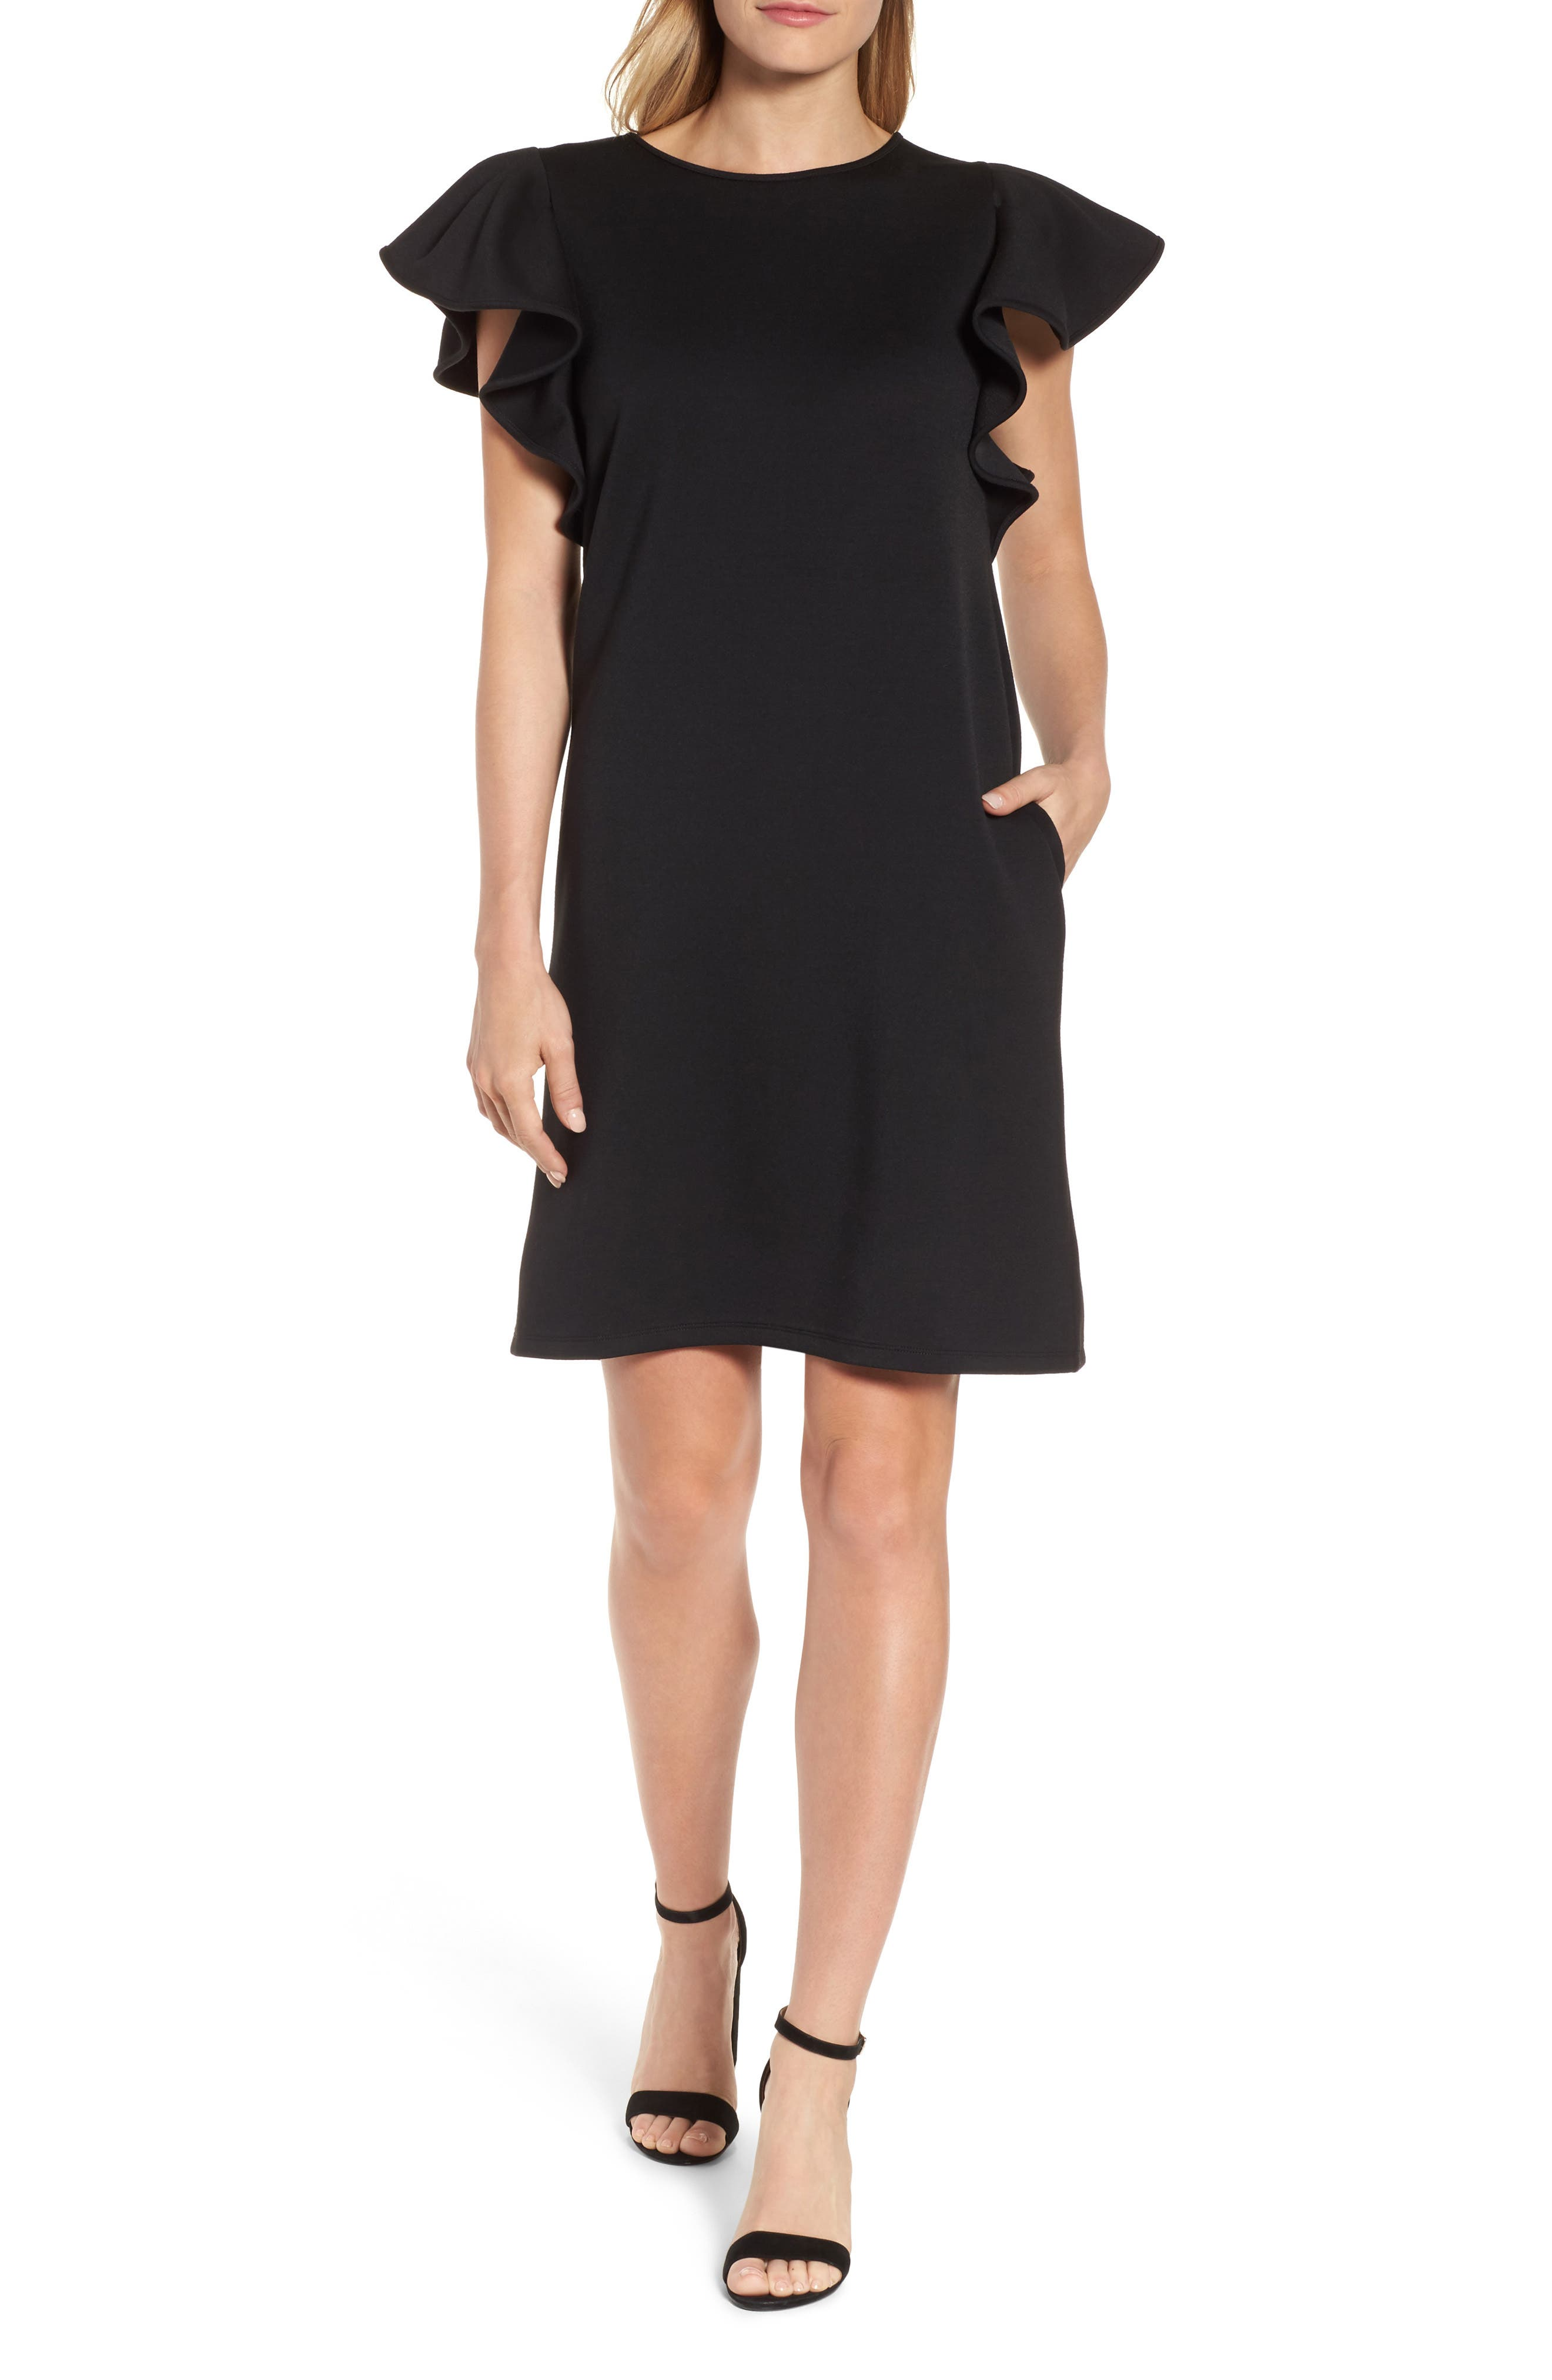 Ruffle Sleeve Neoprene Shift Dress,                             Main thumbnail 1, color,                             Black